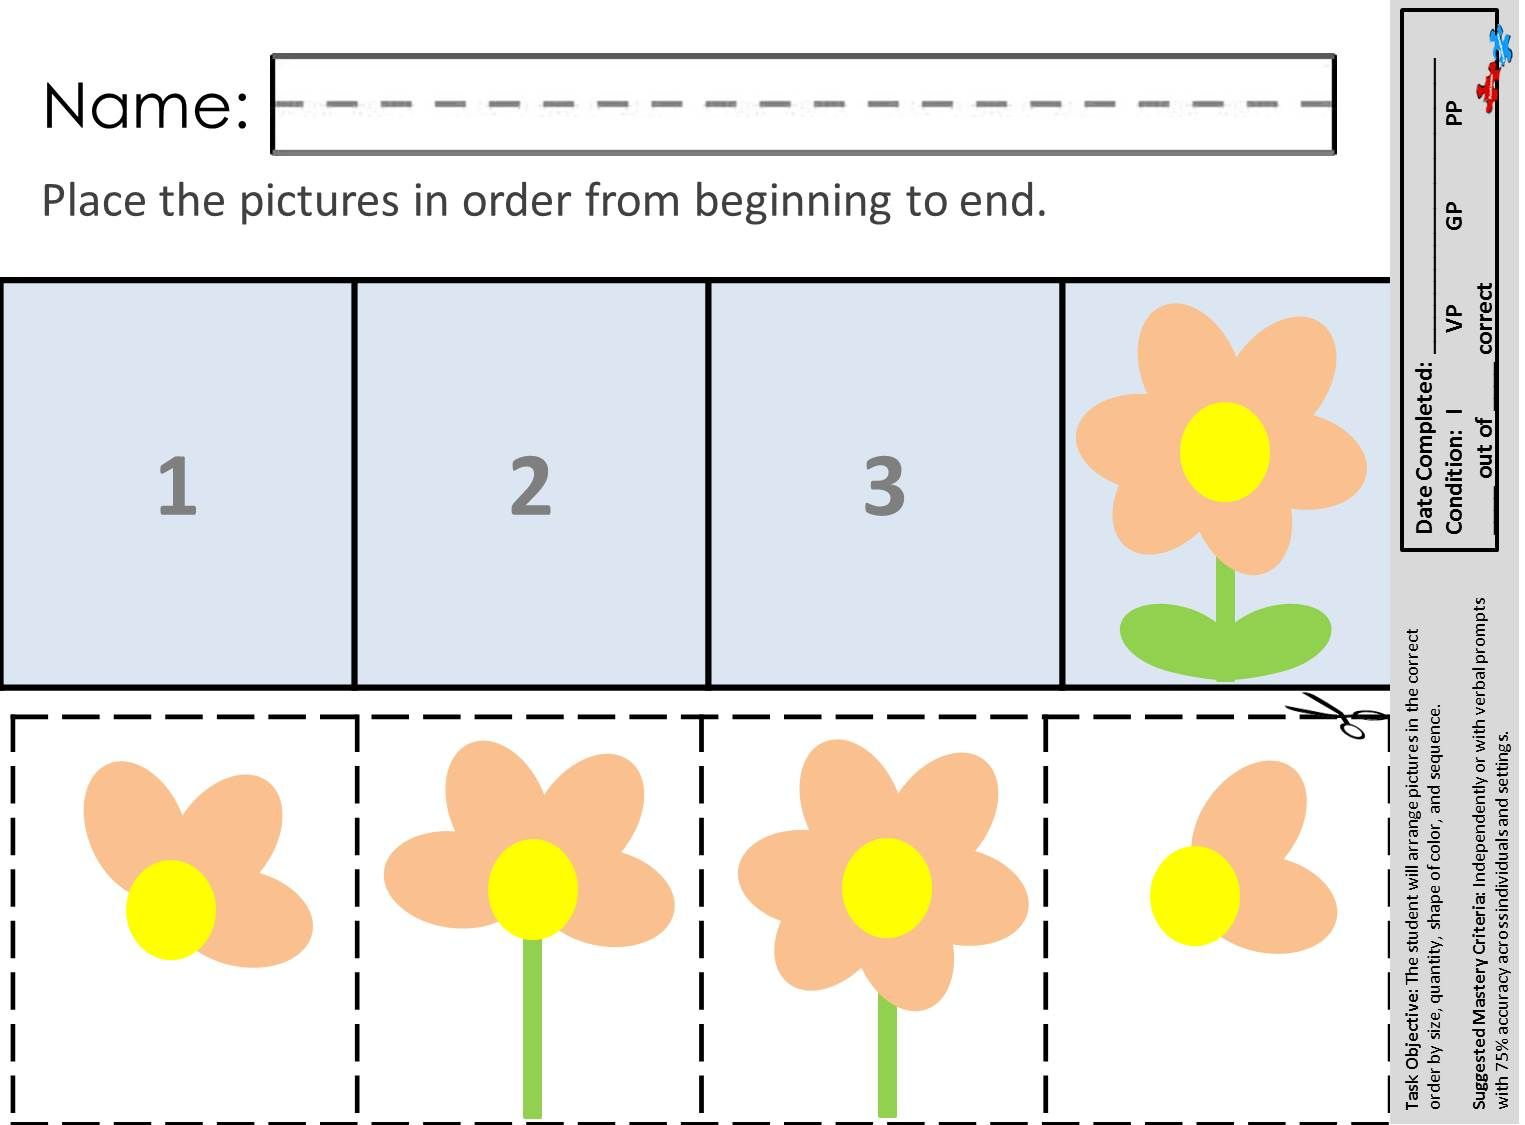 Finally An Easy Way To Practice Seriation Skills Find These And Other Great Printables At